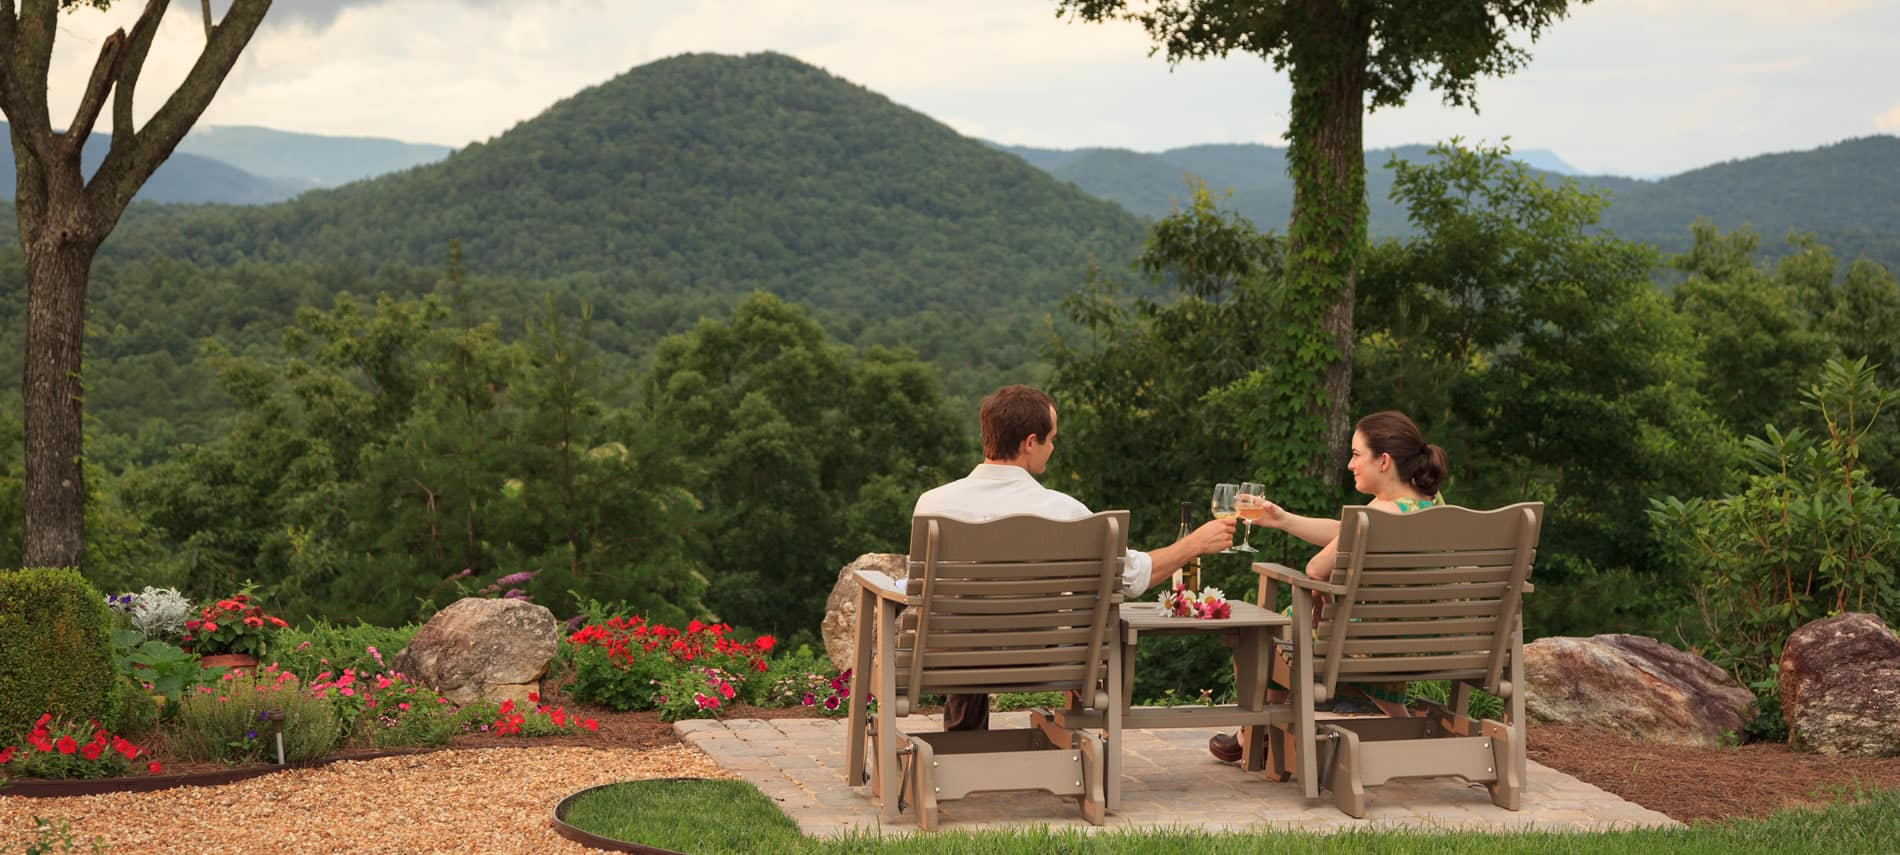 a couple sitting in the wooden chairs outside on a patio looking out at the Mountains